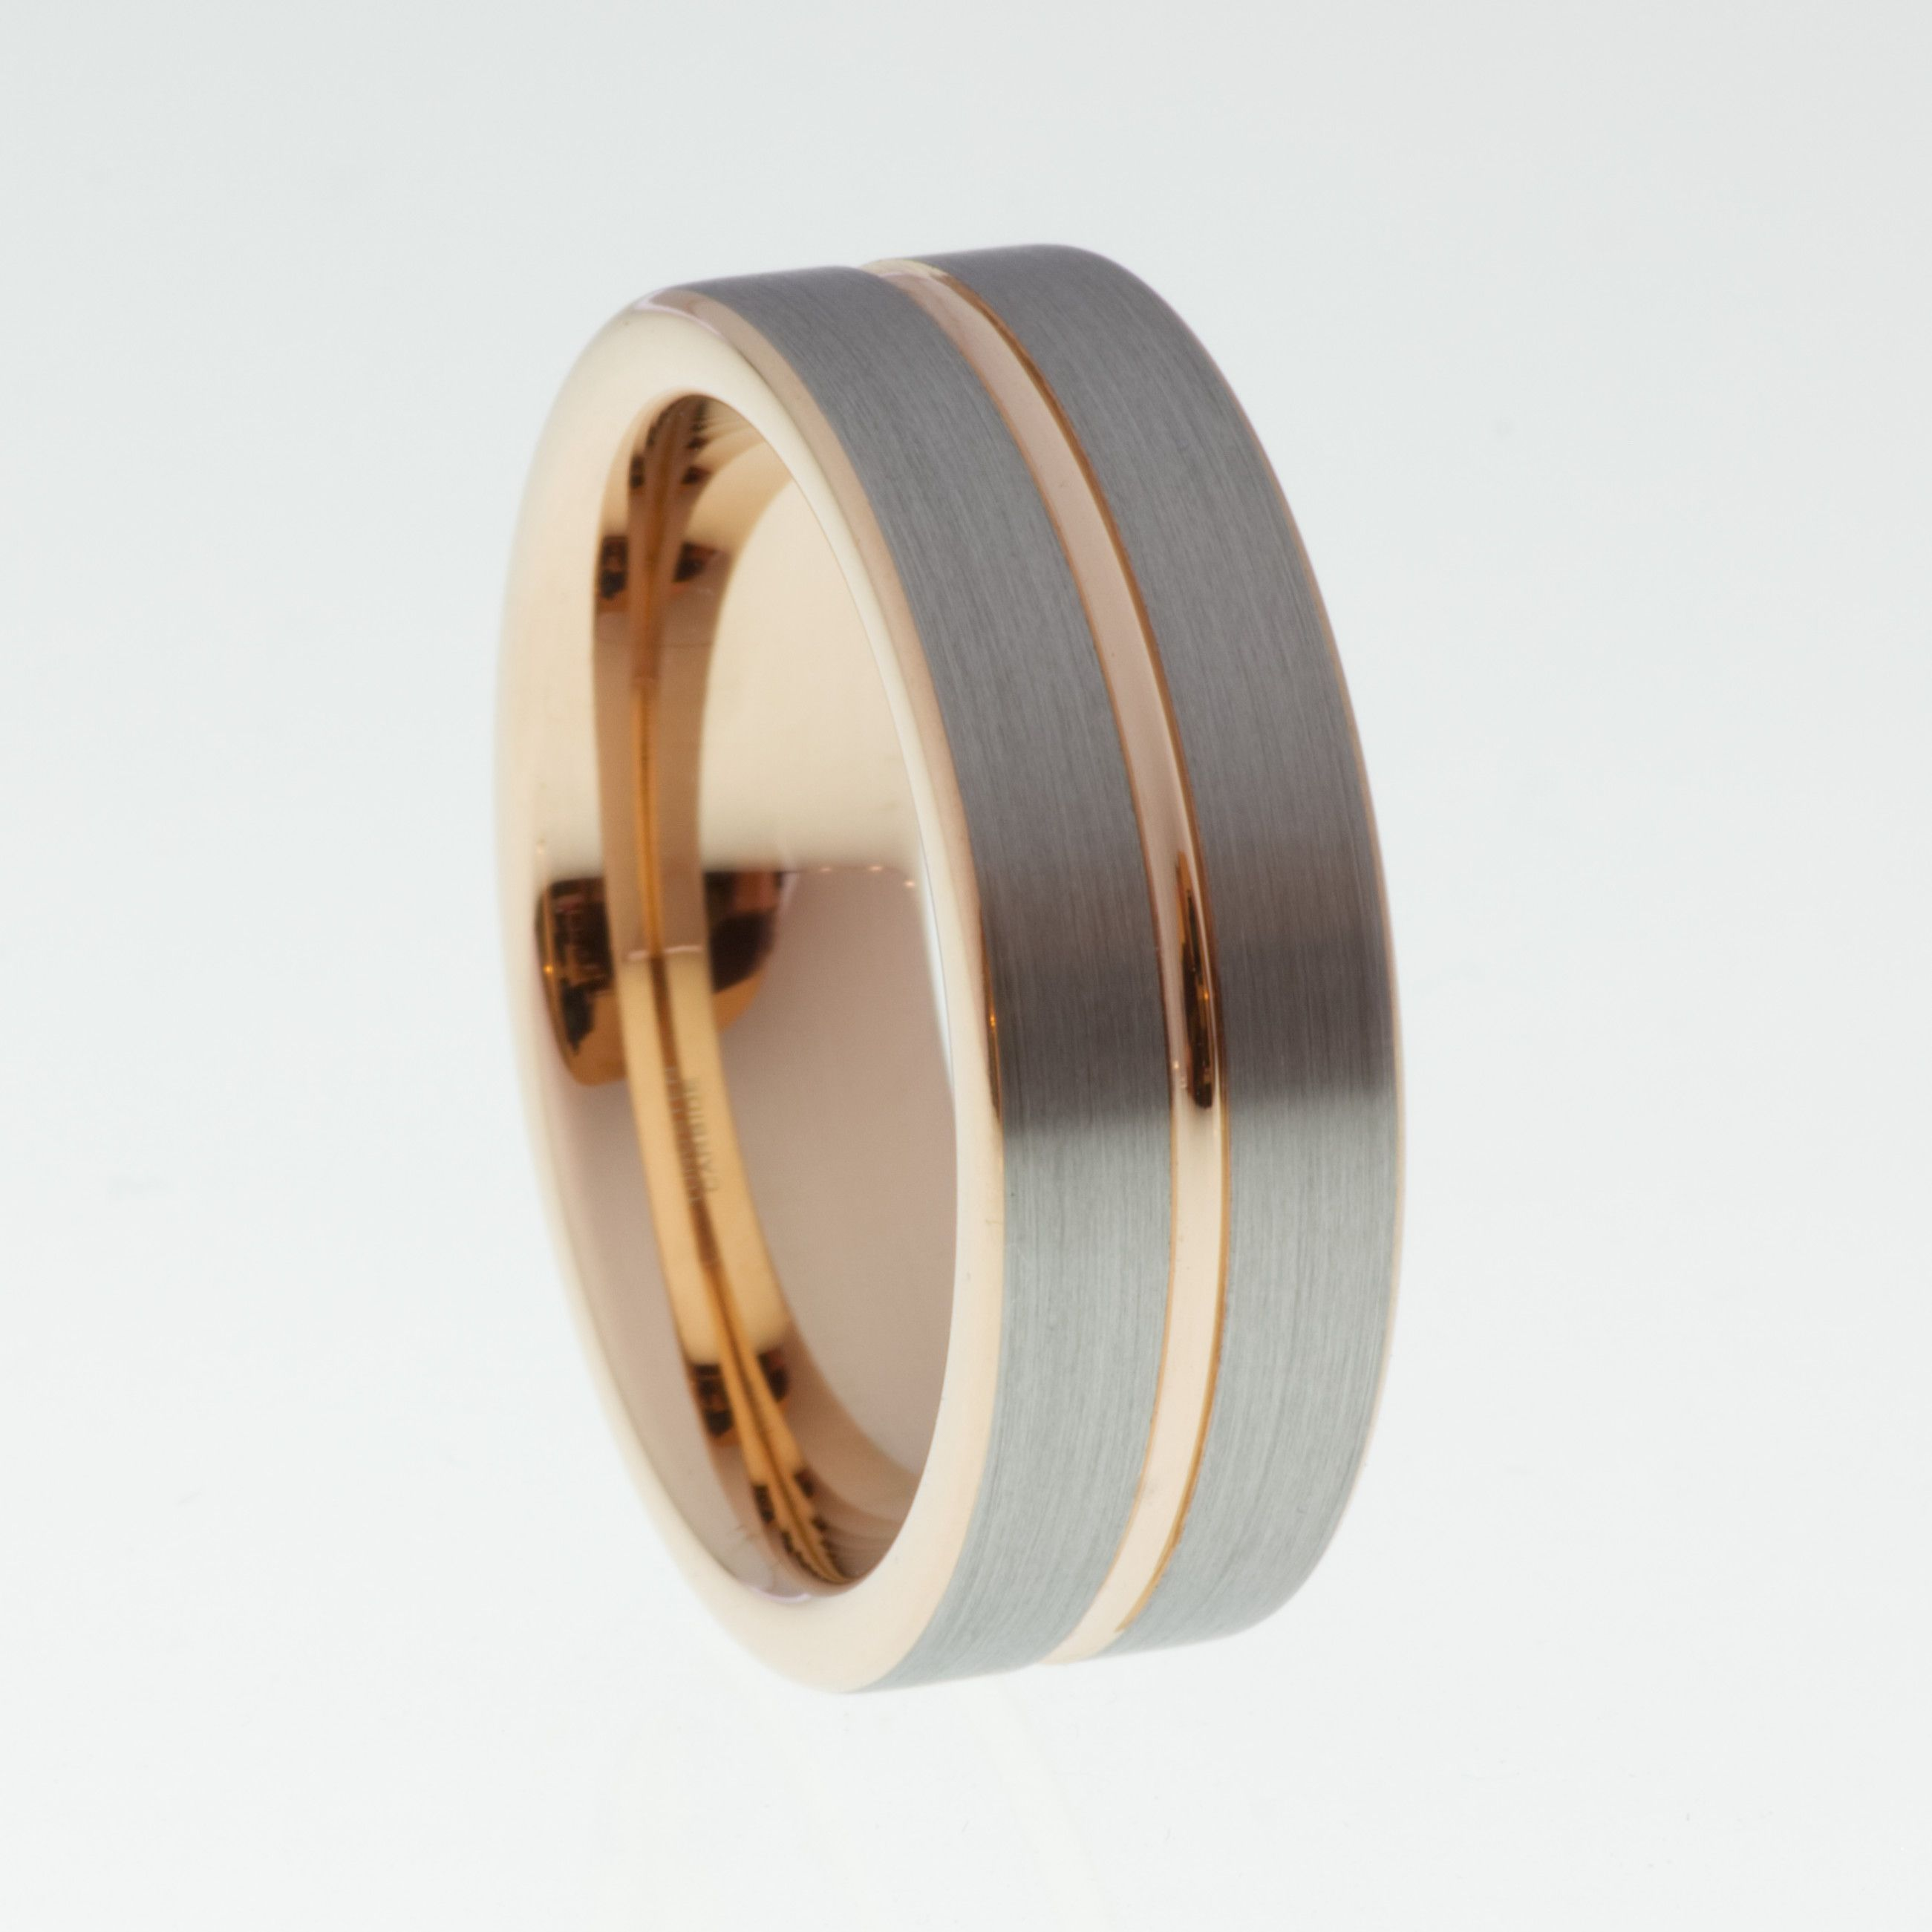 Brushed Tungsten Ring With Rose Gold Accent 8mm Mens Wedding Band Ring Australianwedding Mens Wedding Rings Wedding Rings Mens Gold Wedding Band